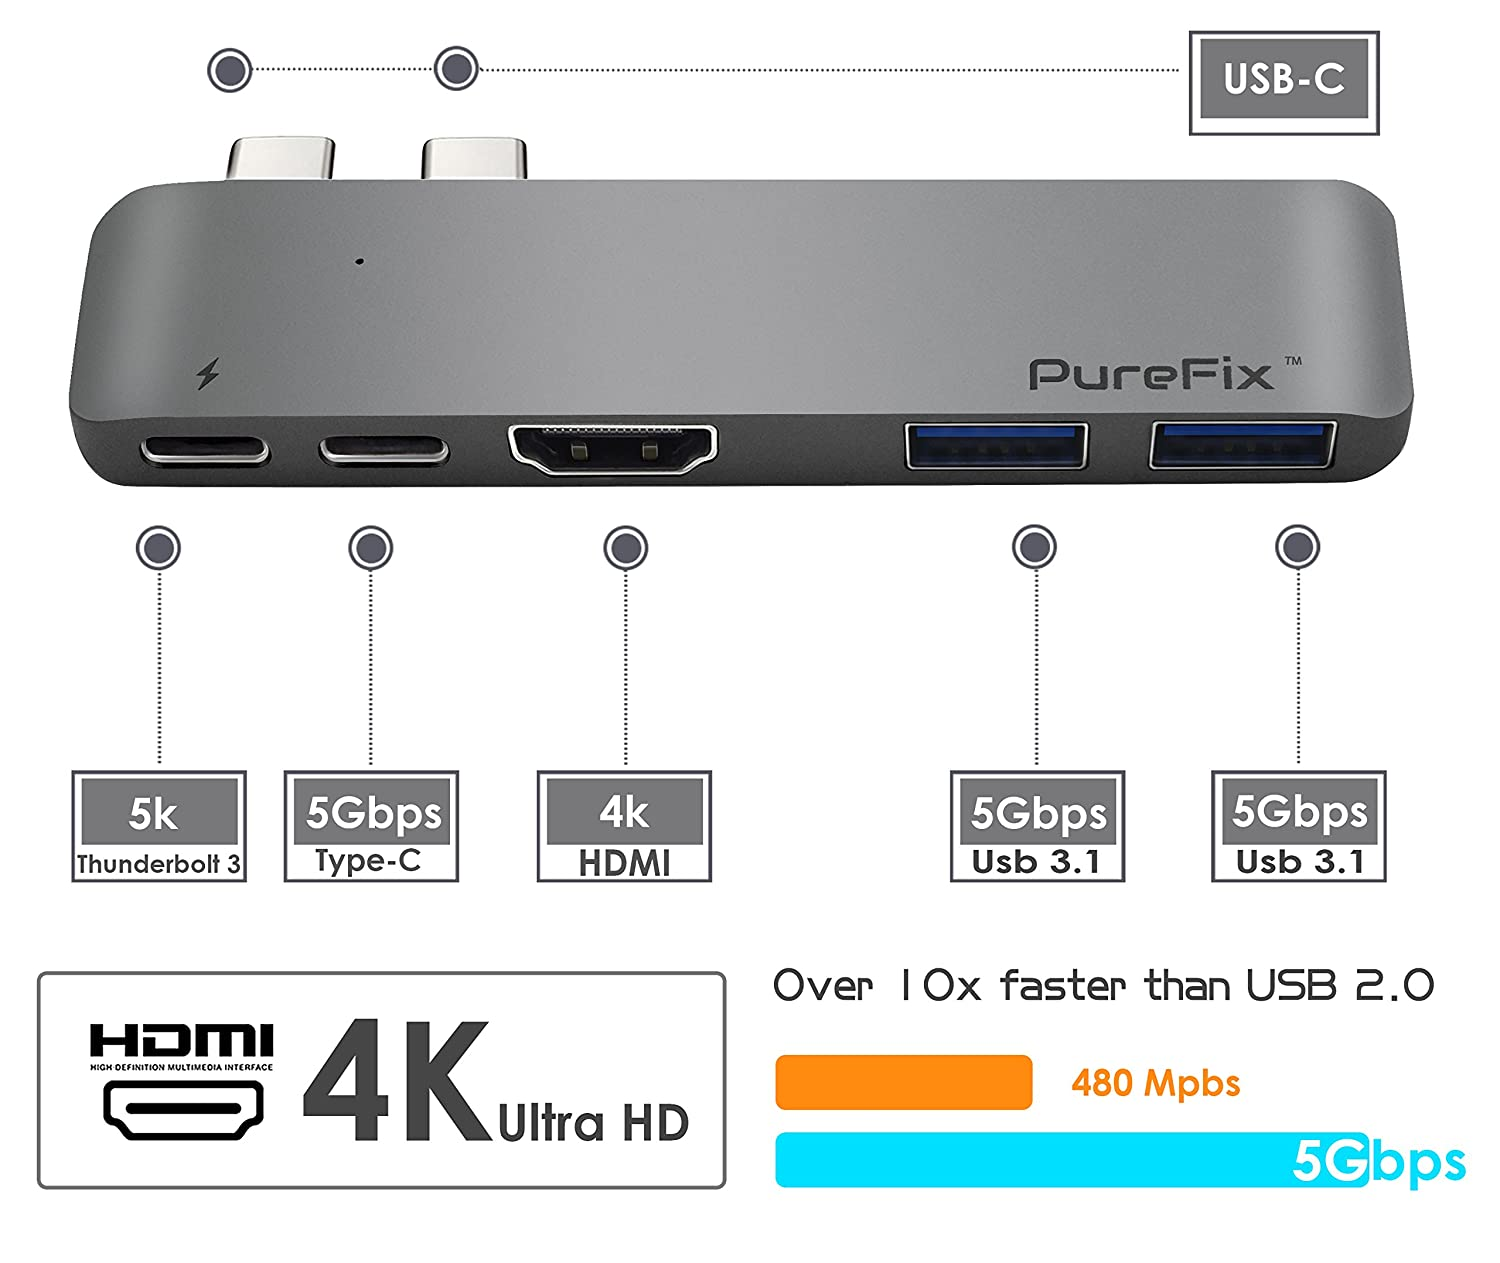 PureFix USB C Hub Pass-Through Charging Fastest 40Gb//s Type-C 5 in 1 Multi-Port Hub Adapter for MacBook Pro 13 // 15 with Thunderbolt 3 Space Grey 2 USB 3.1 Ports and 4K HDMI Out